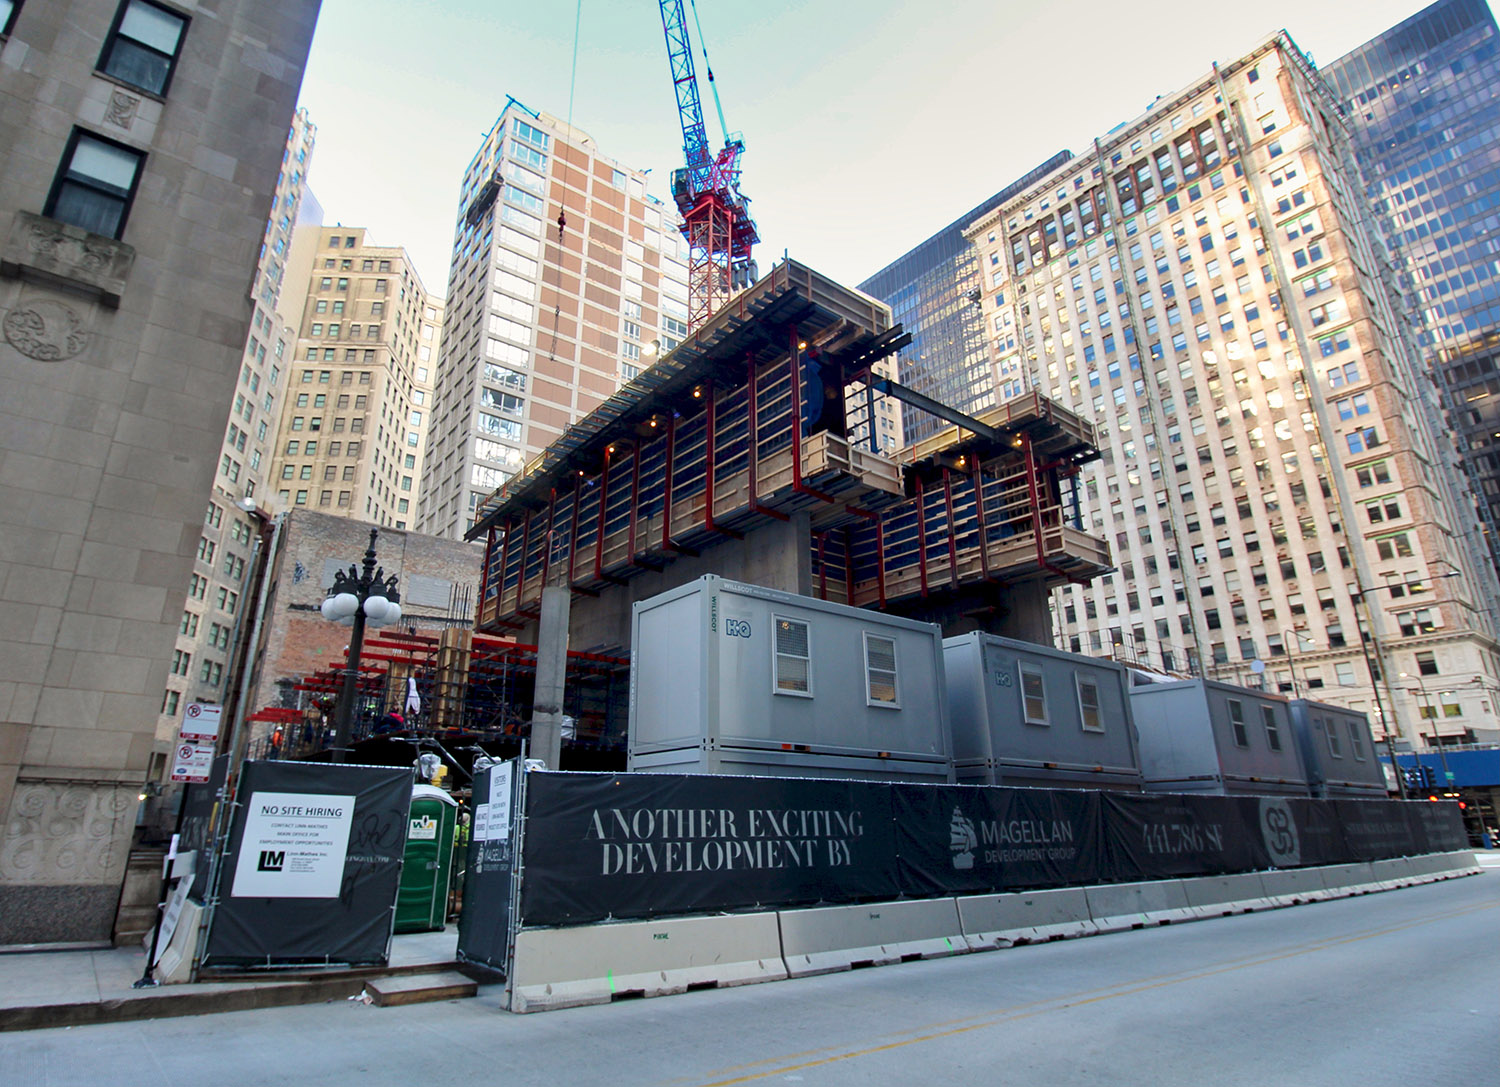 Construction Progress at 300 N Michigan Avenue. Image by Jack Crawford